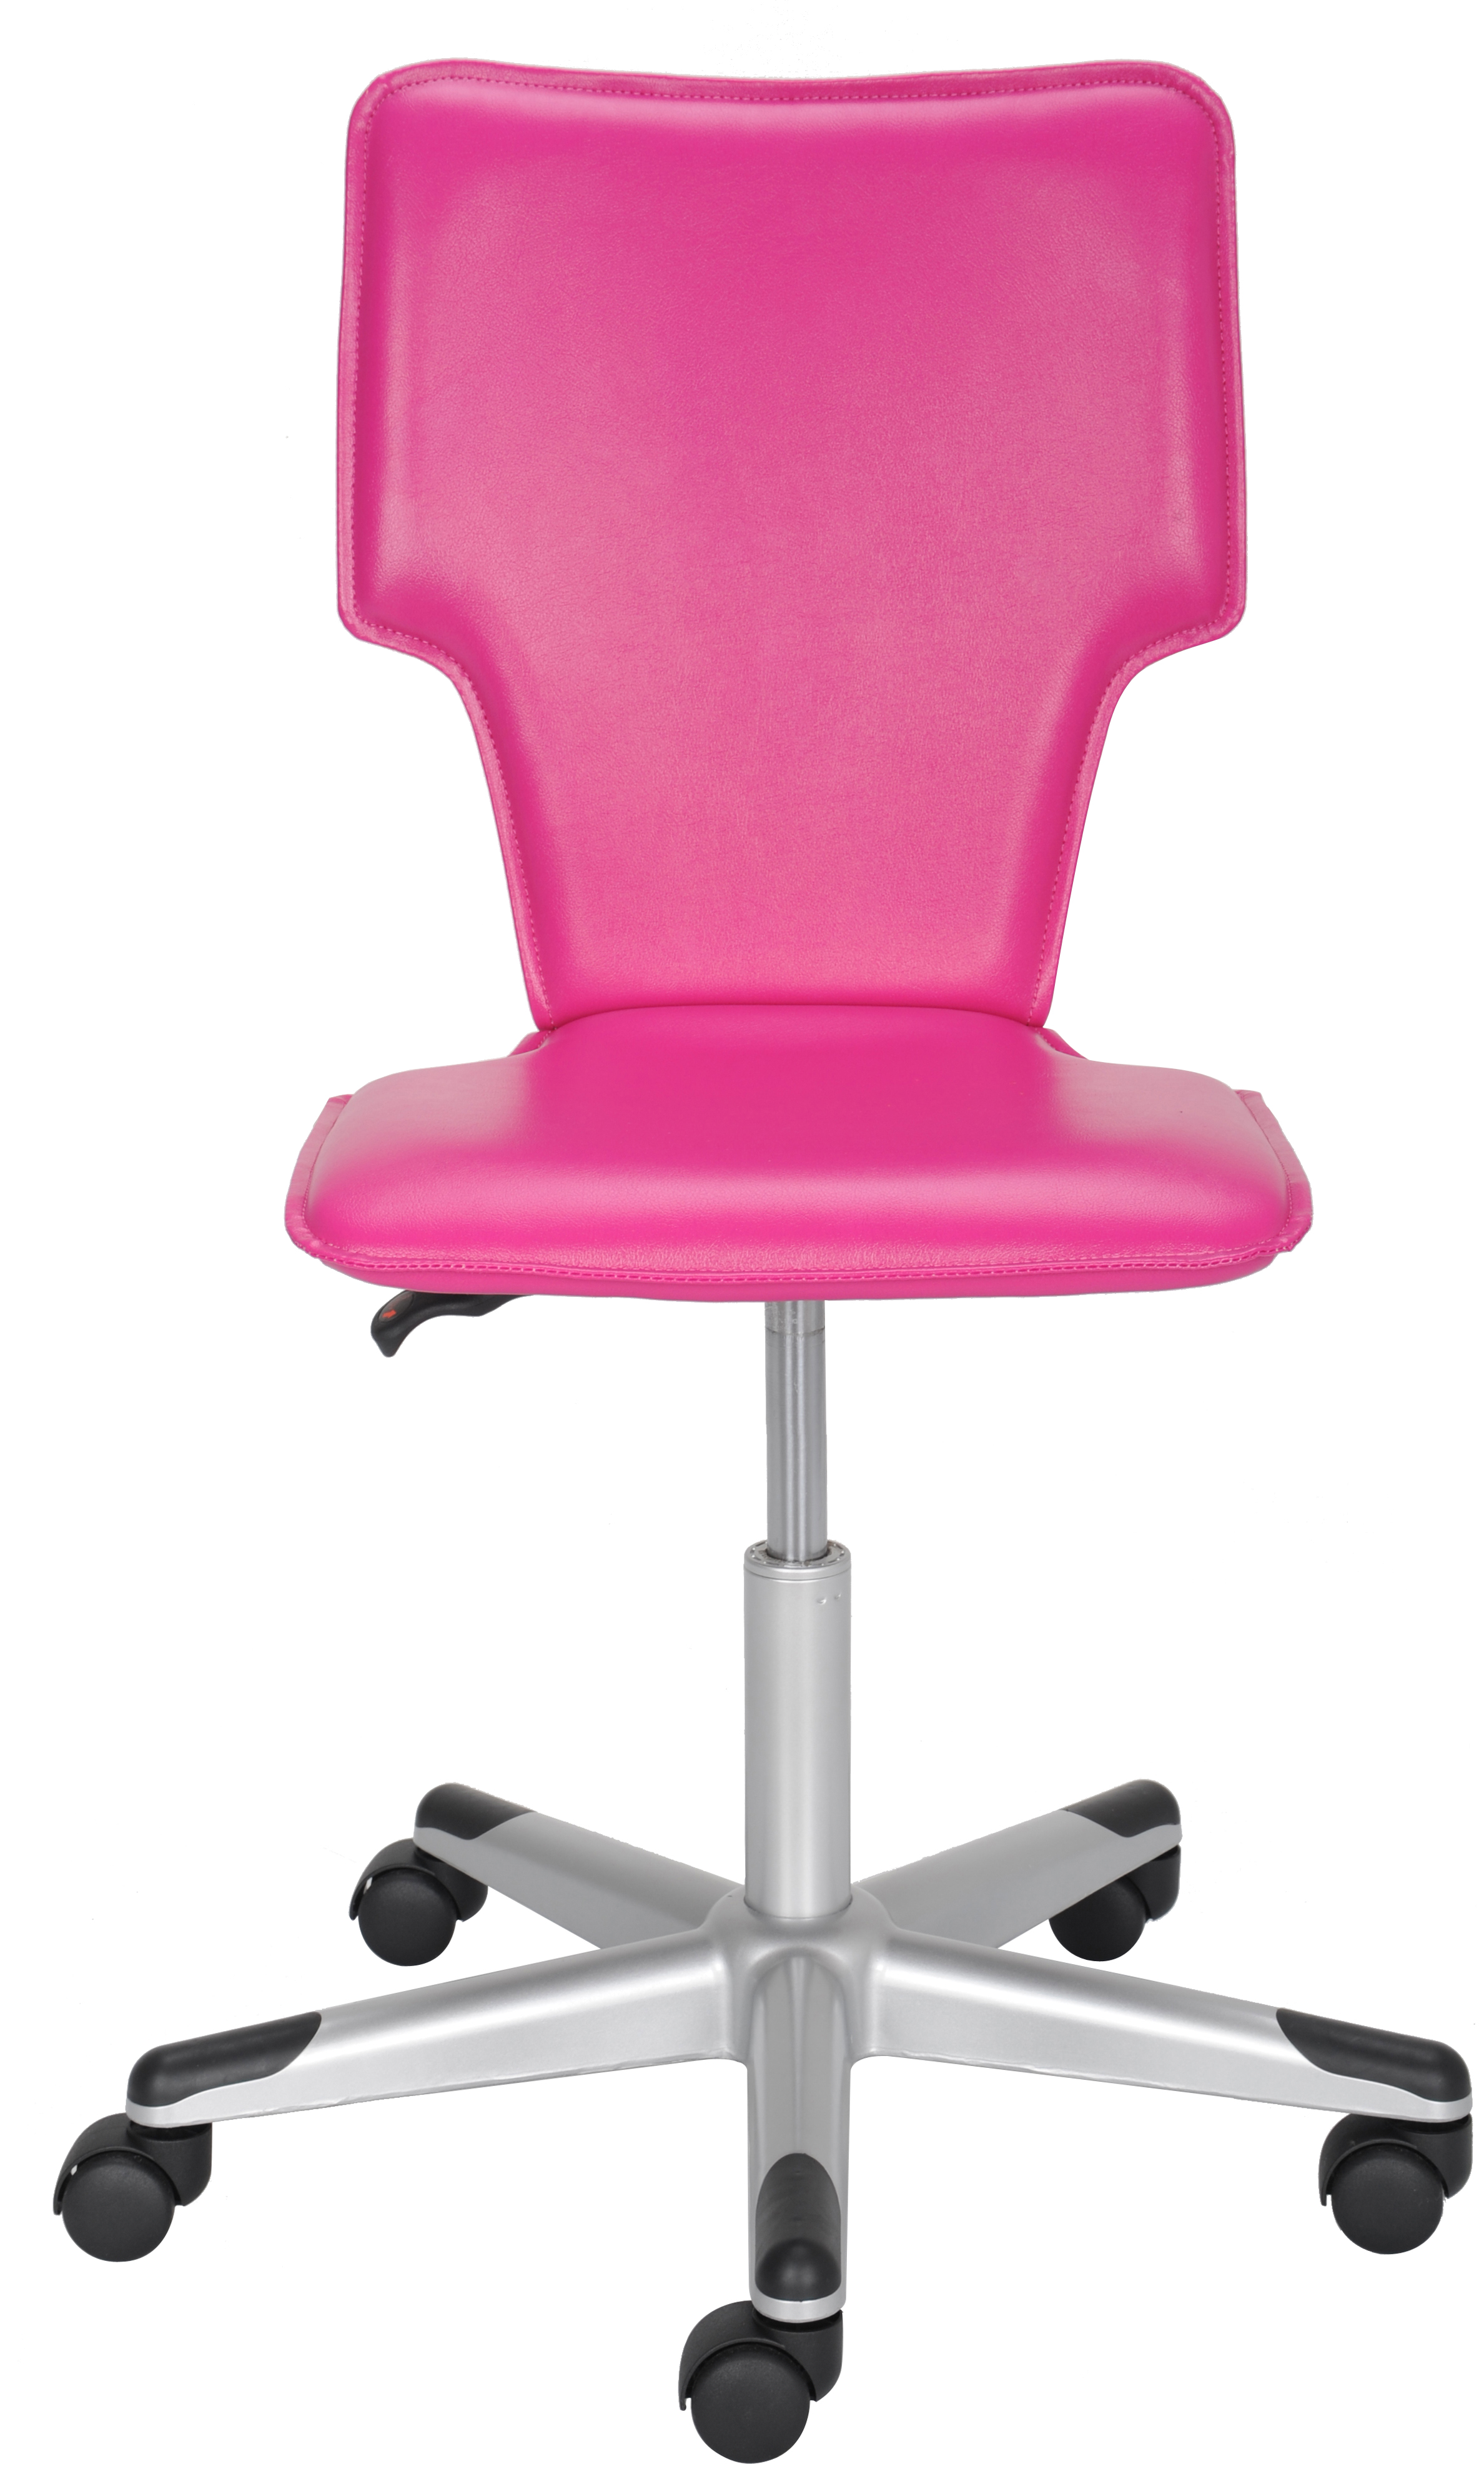 Mainstays Student fice Chair Multiple Colors Walmart